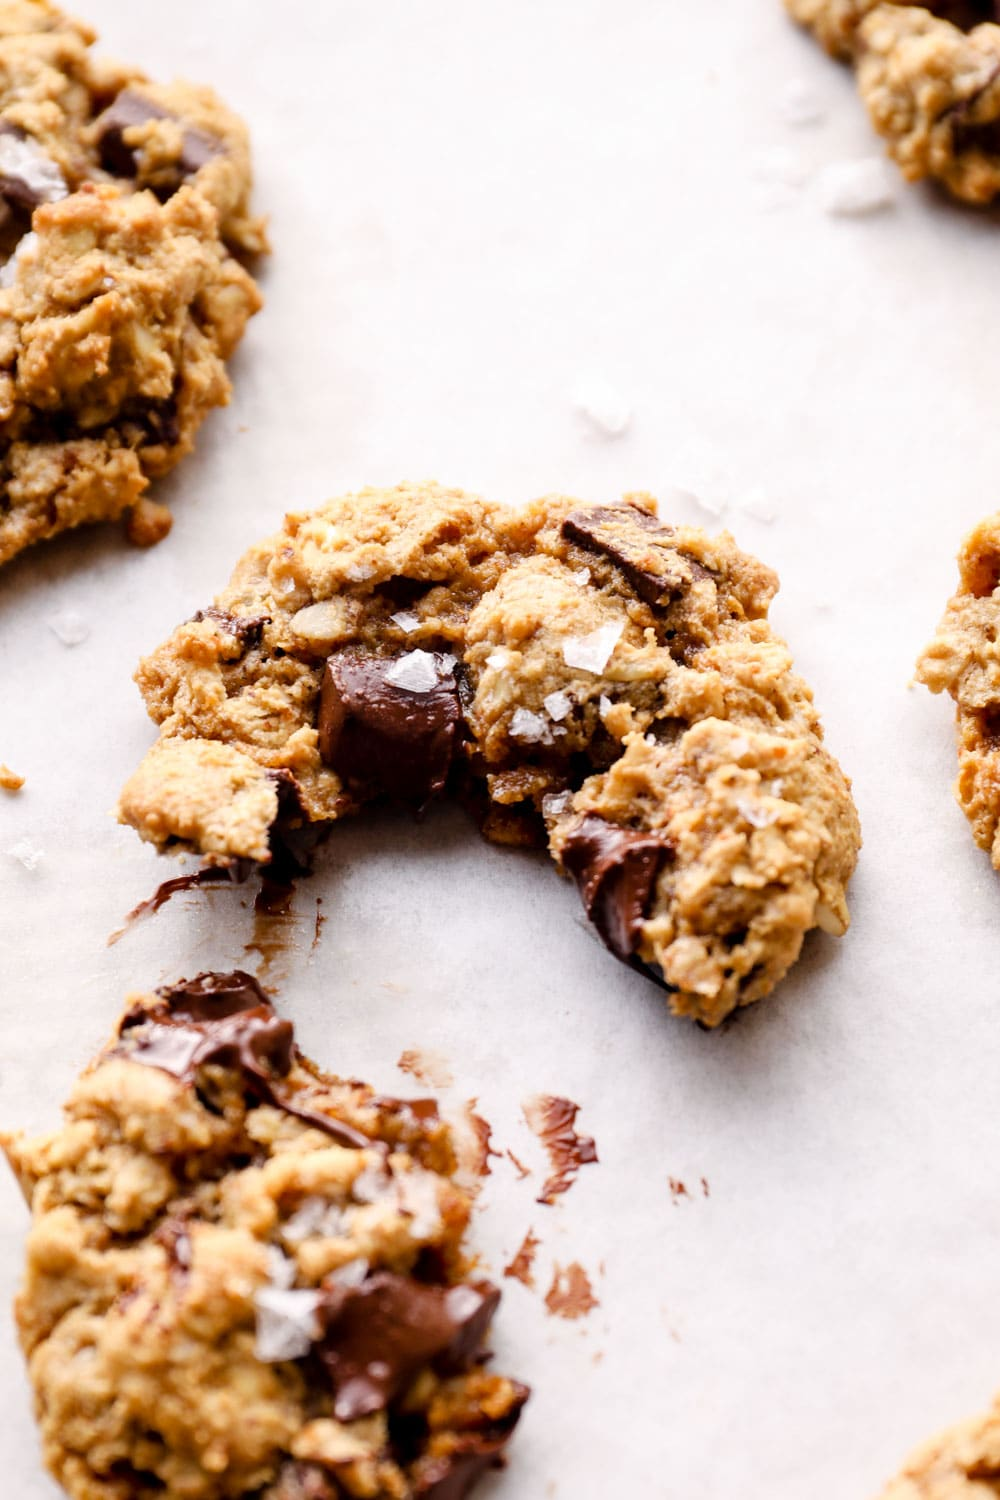 A bite out of a chocolate chip oatmeal cookie.